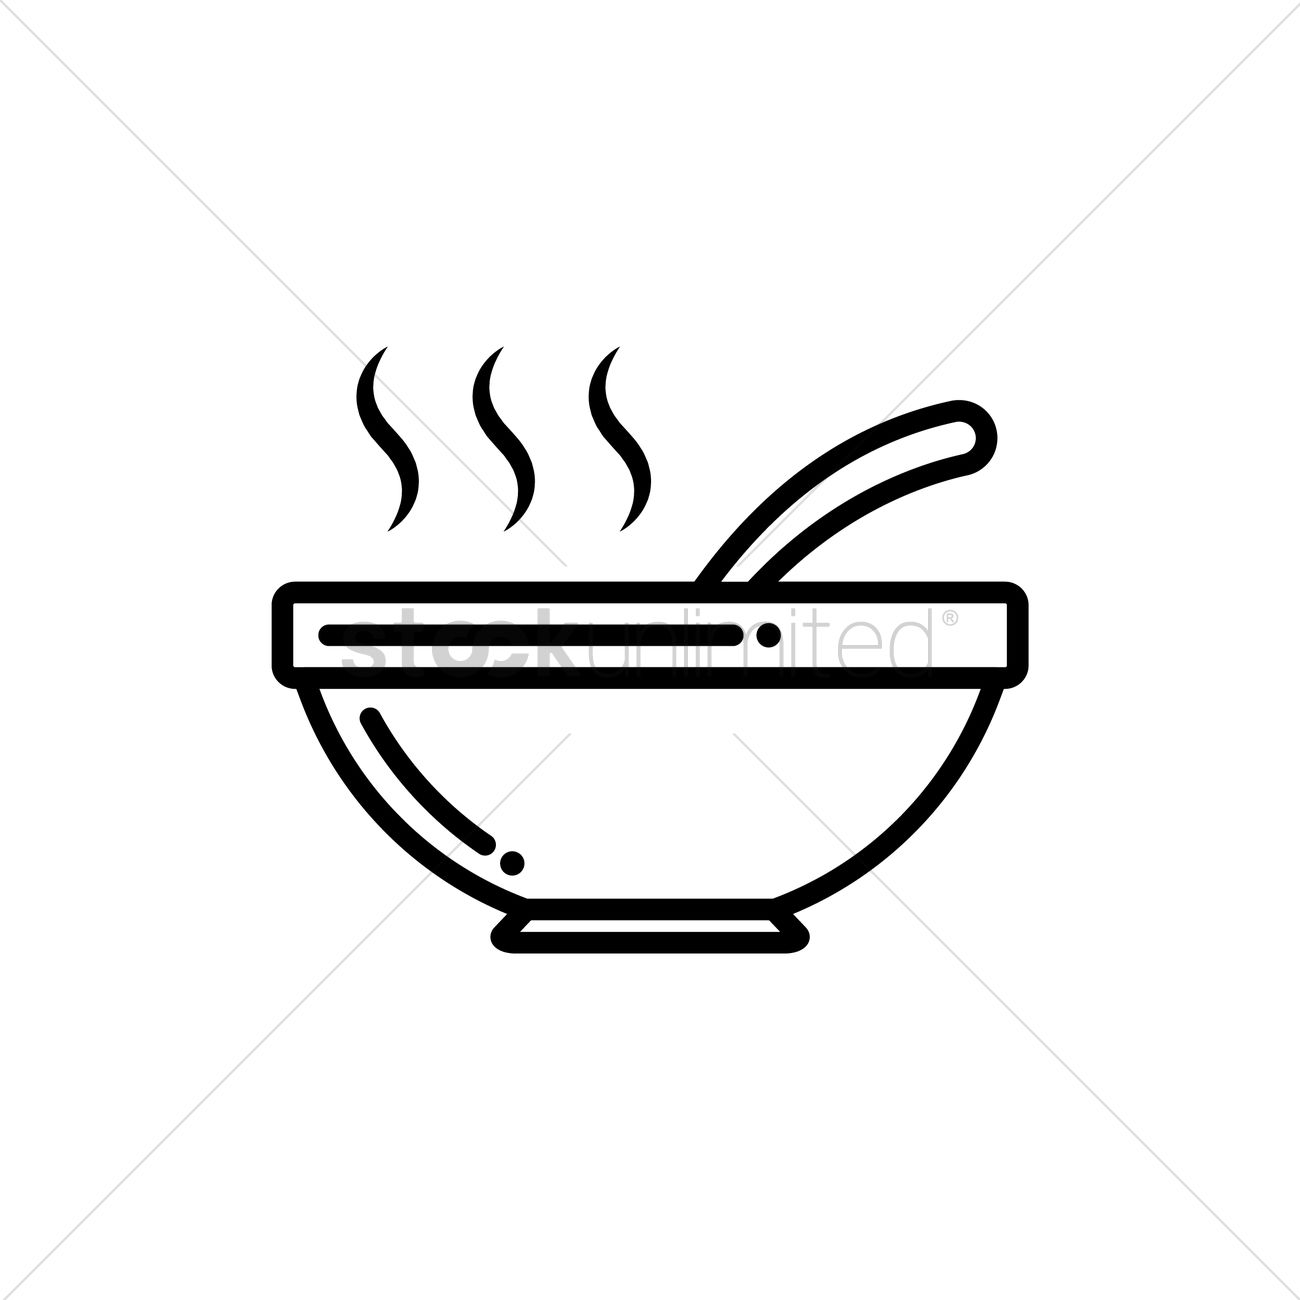 Hot bowl of soup Vector Image - 1484813 | StockUnlimited